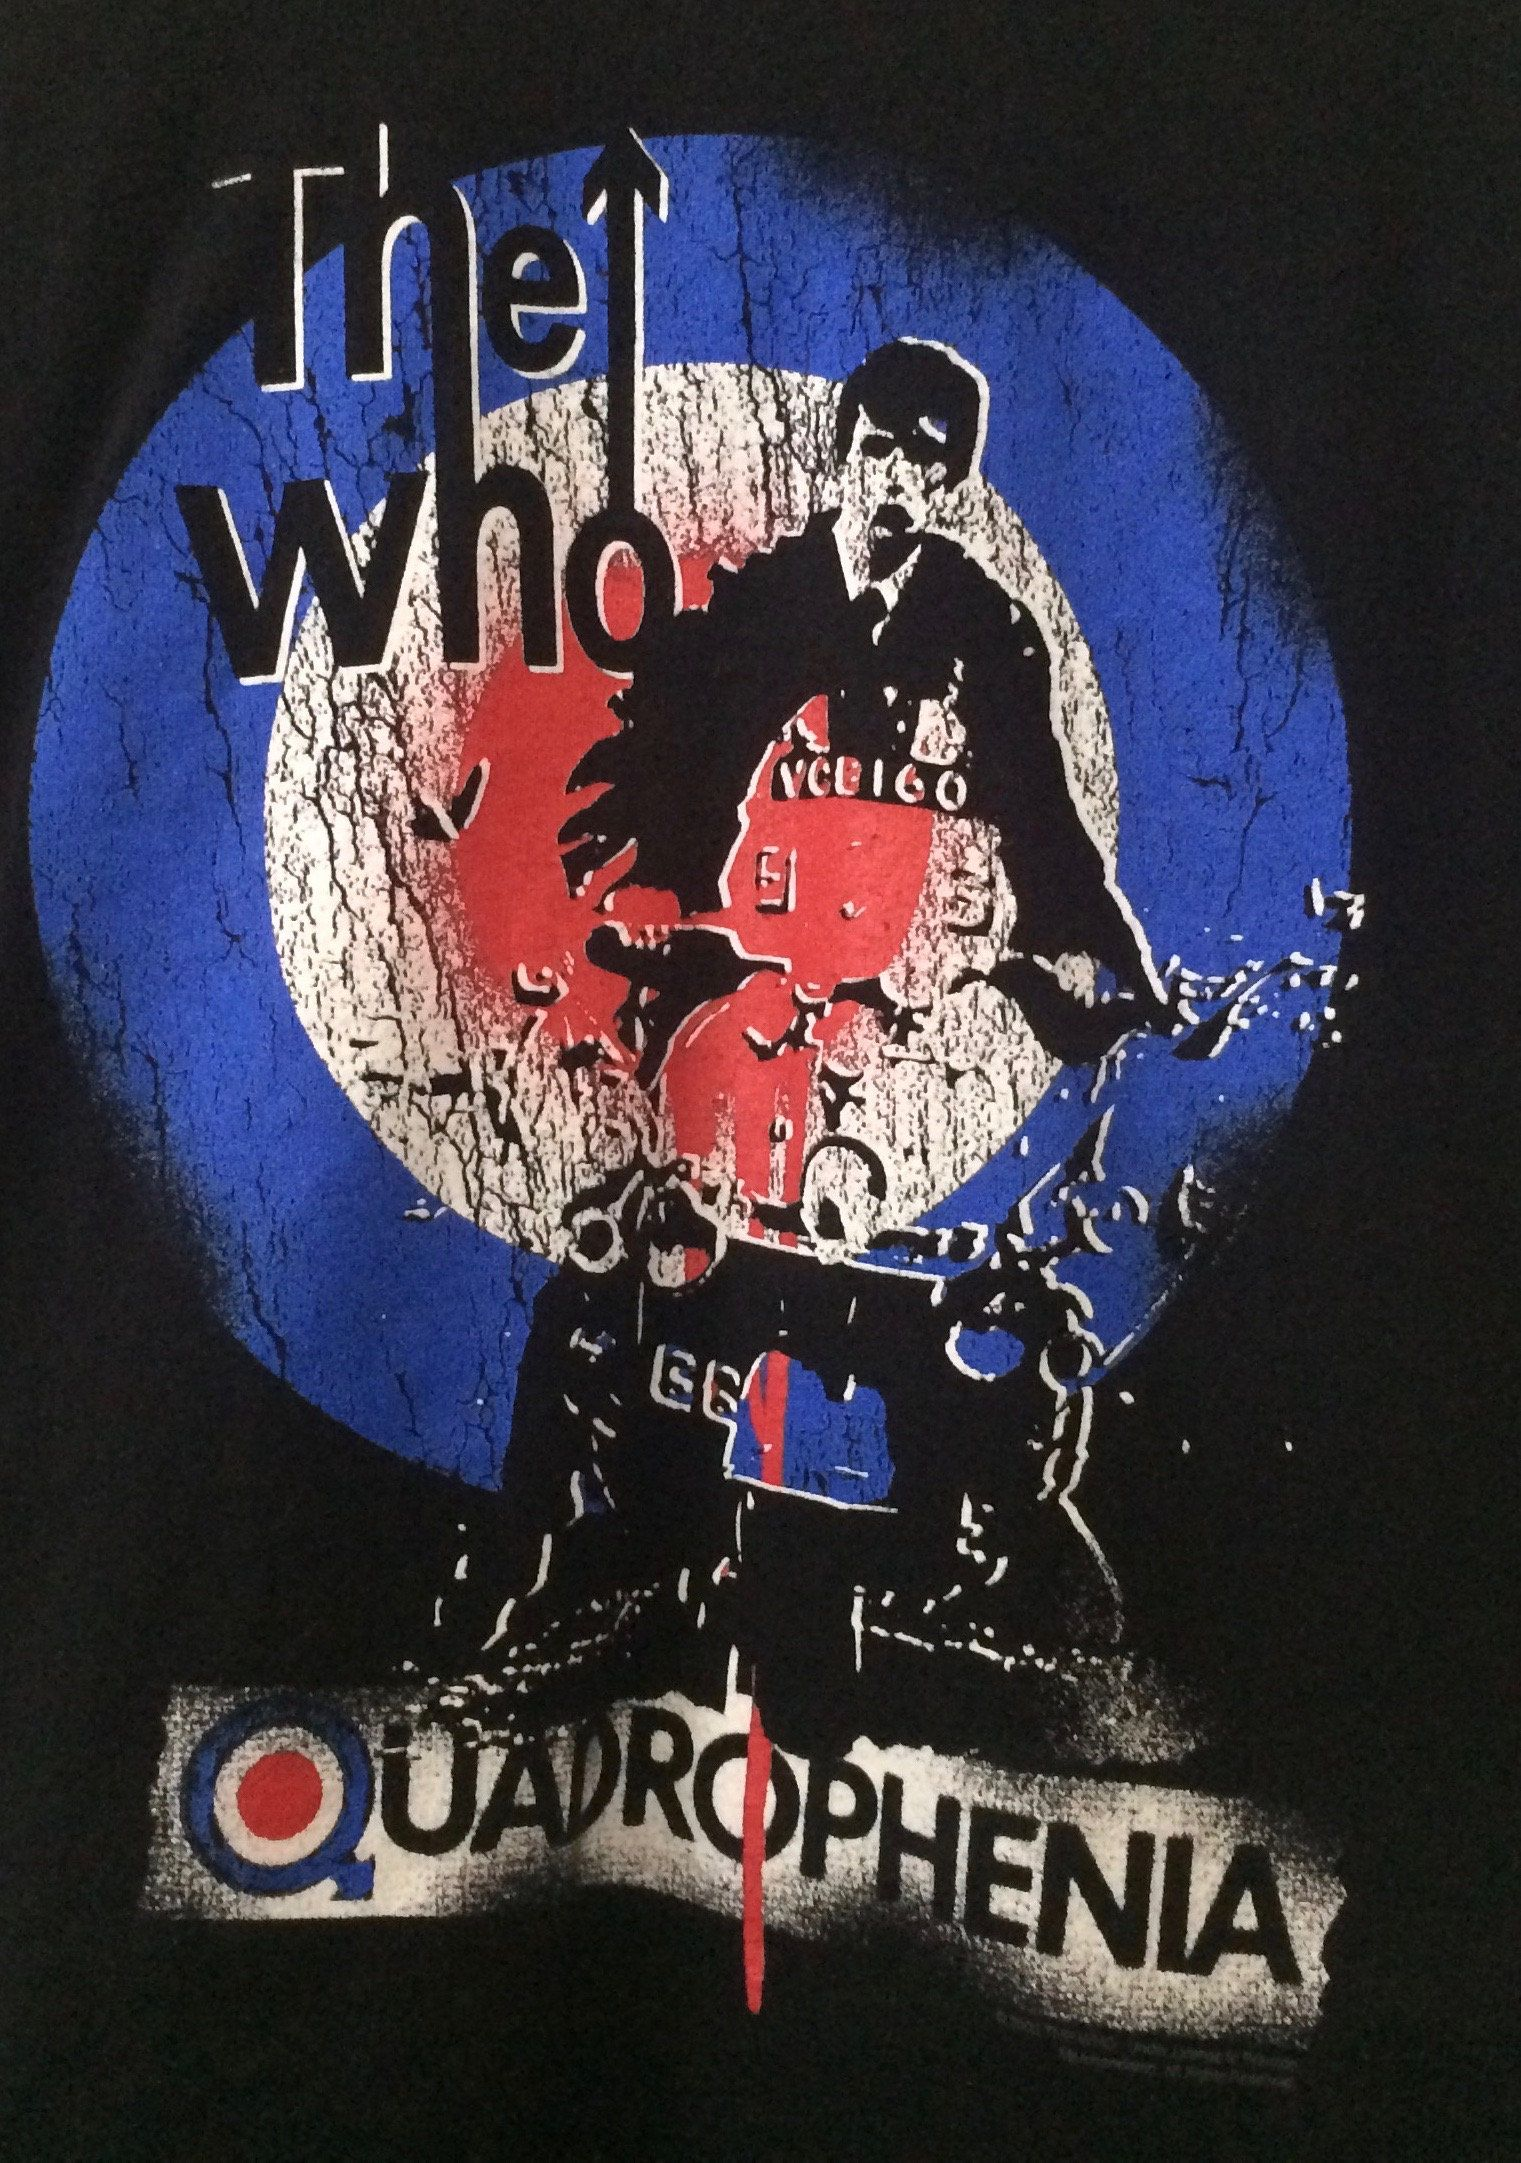 Classic Rock T Shirts Quadrophenia Mod Ska The Etsy In 2020 Band Wallpapers The Who Band Rock Band Posters